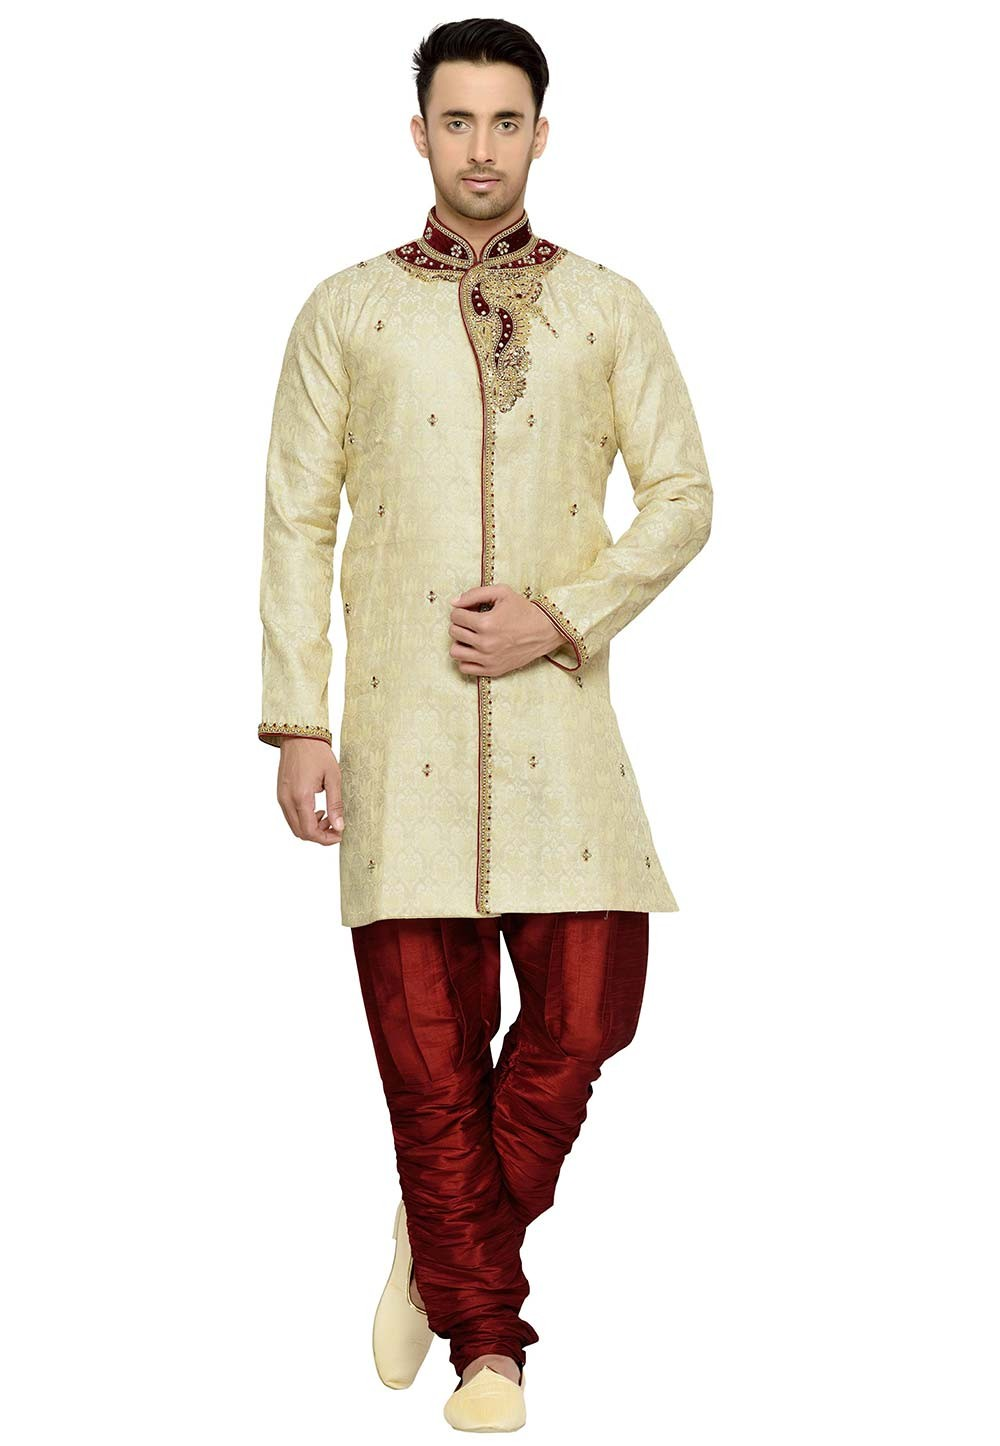 Golden Color Brocade Fabric Readymade Kurta Pyjama.